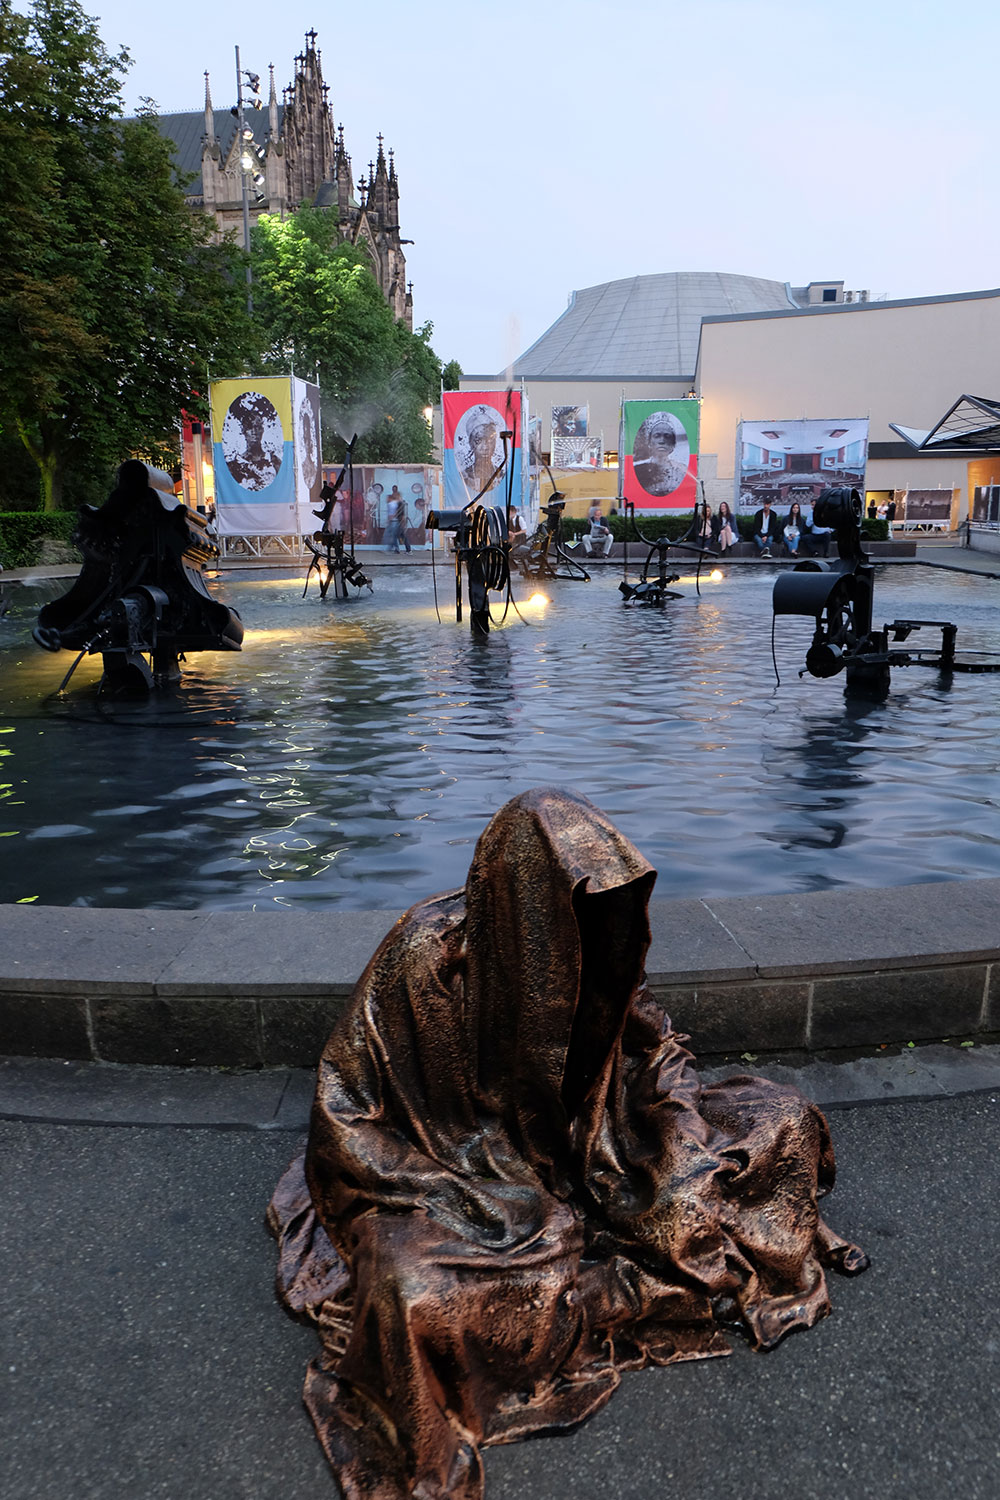 artbasel-swiss-scope-art-guardians-of-time-manfred-kili-kielnhofer-large-scale-contemporary-art-design-sculpture-statue-arts-arte-4784